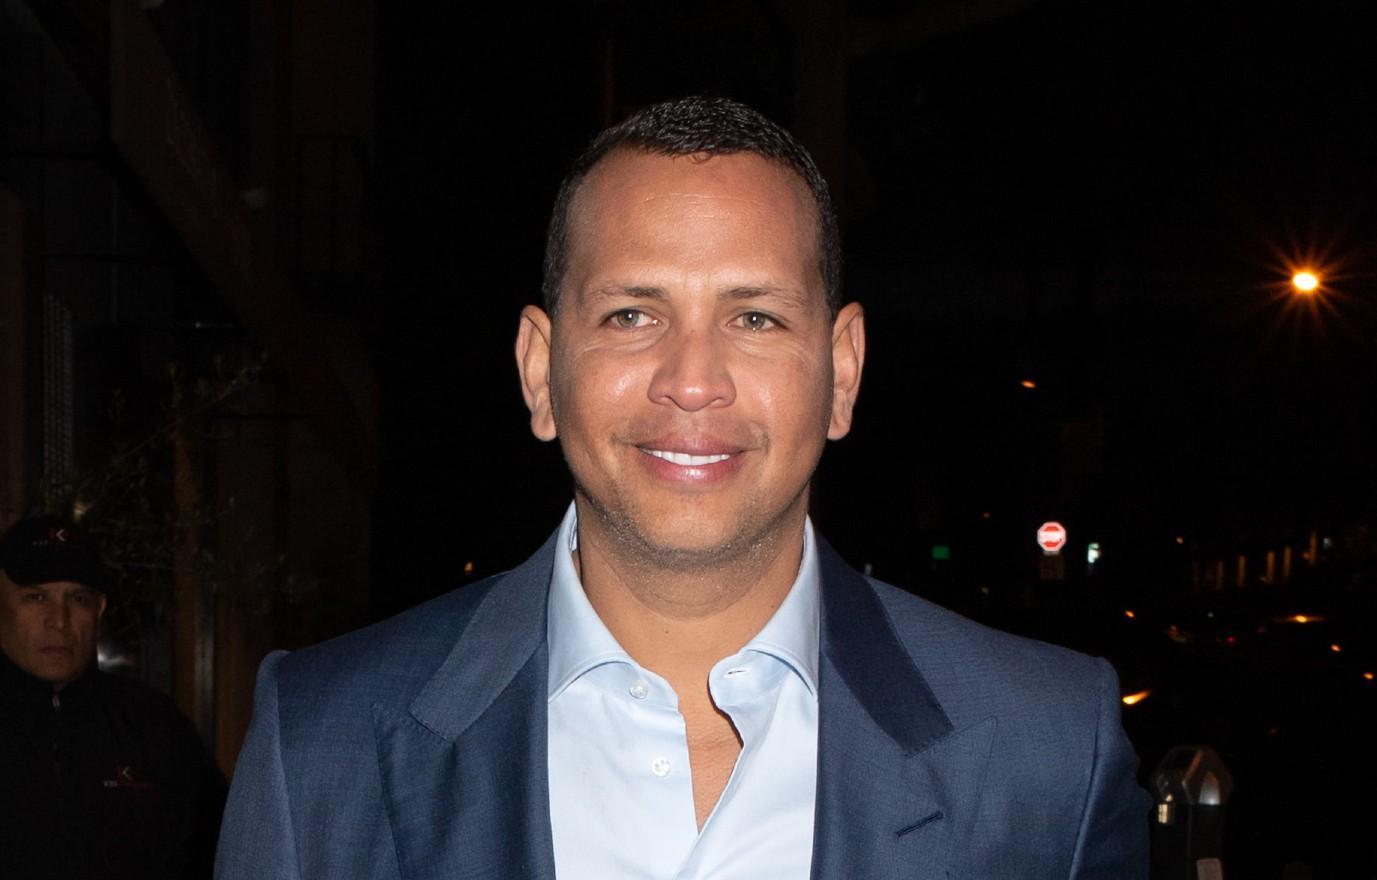 alex rodriguez is hanging out with an ex following is j lo split ben affleck couples break ups divorce a rod hollywood mlb